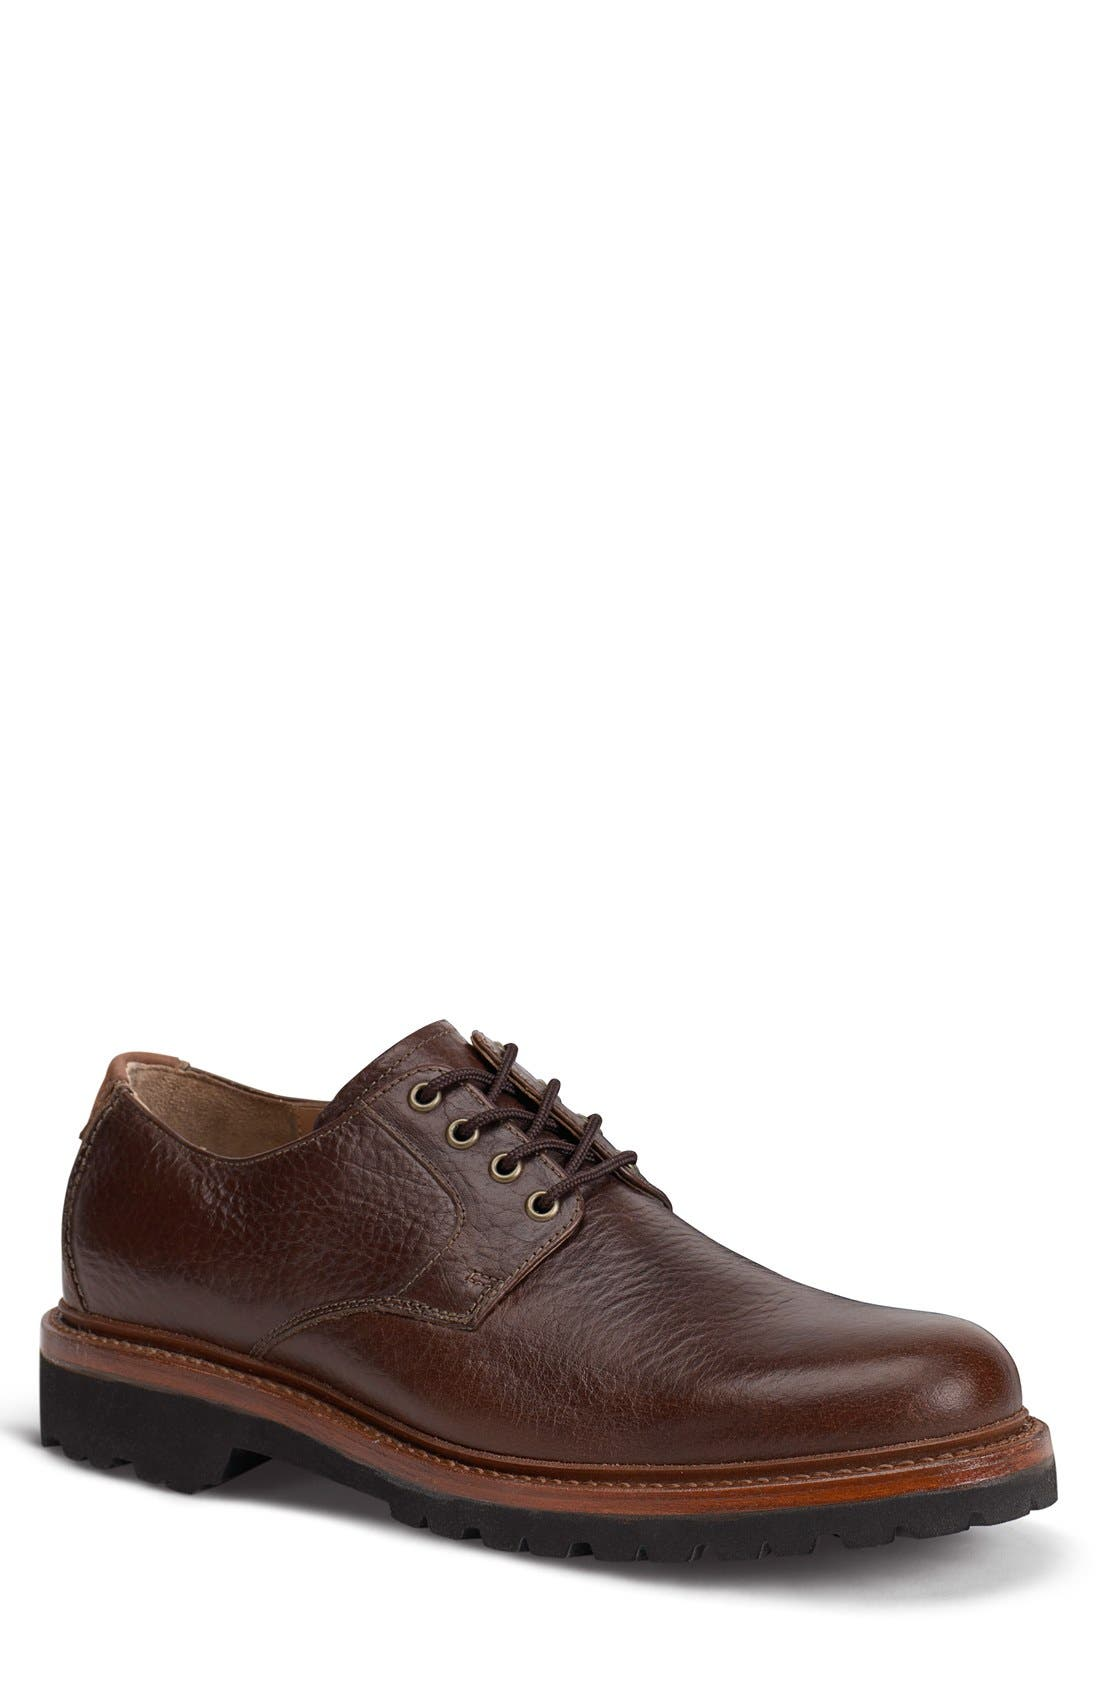 'Gallatin II' Oxford,                         Main,                         color, Bourbon Leather